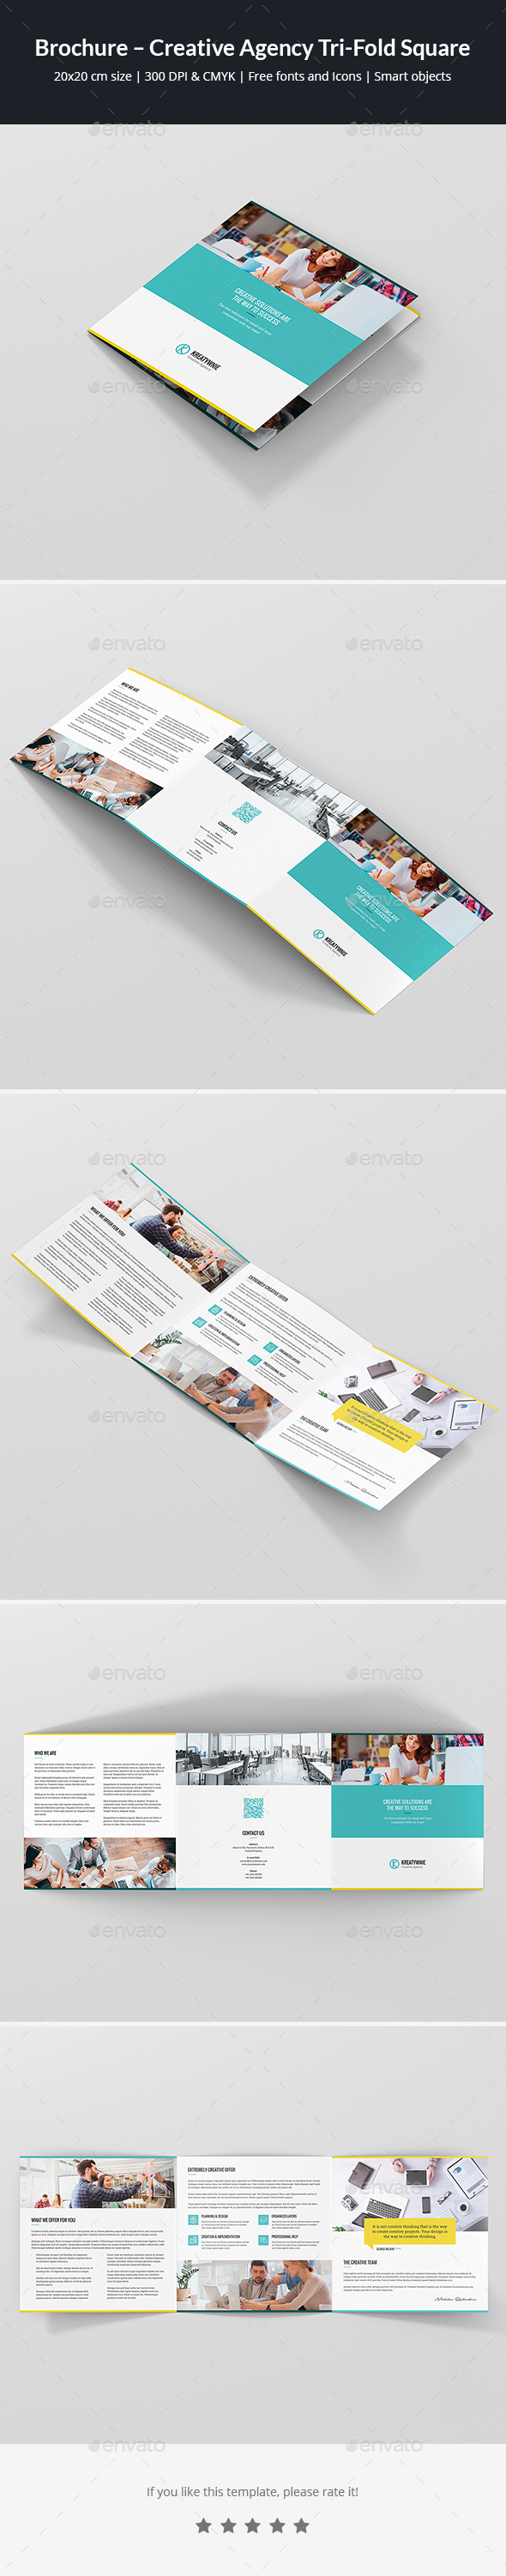 GraphicRiver Brochure Creative Agency Tri-Fold Square 21120962